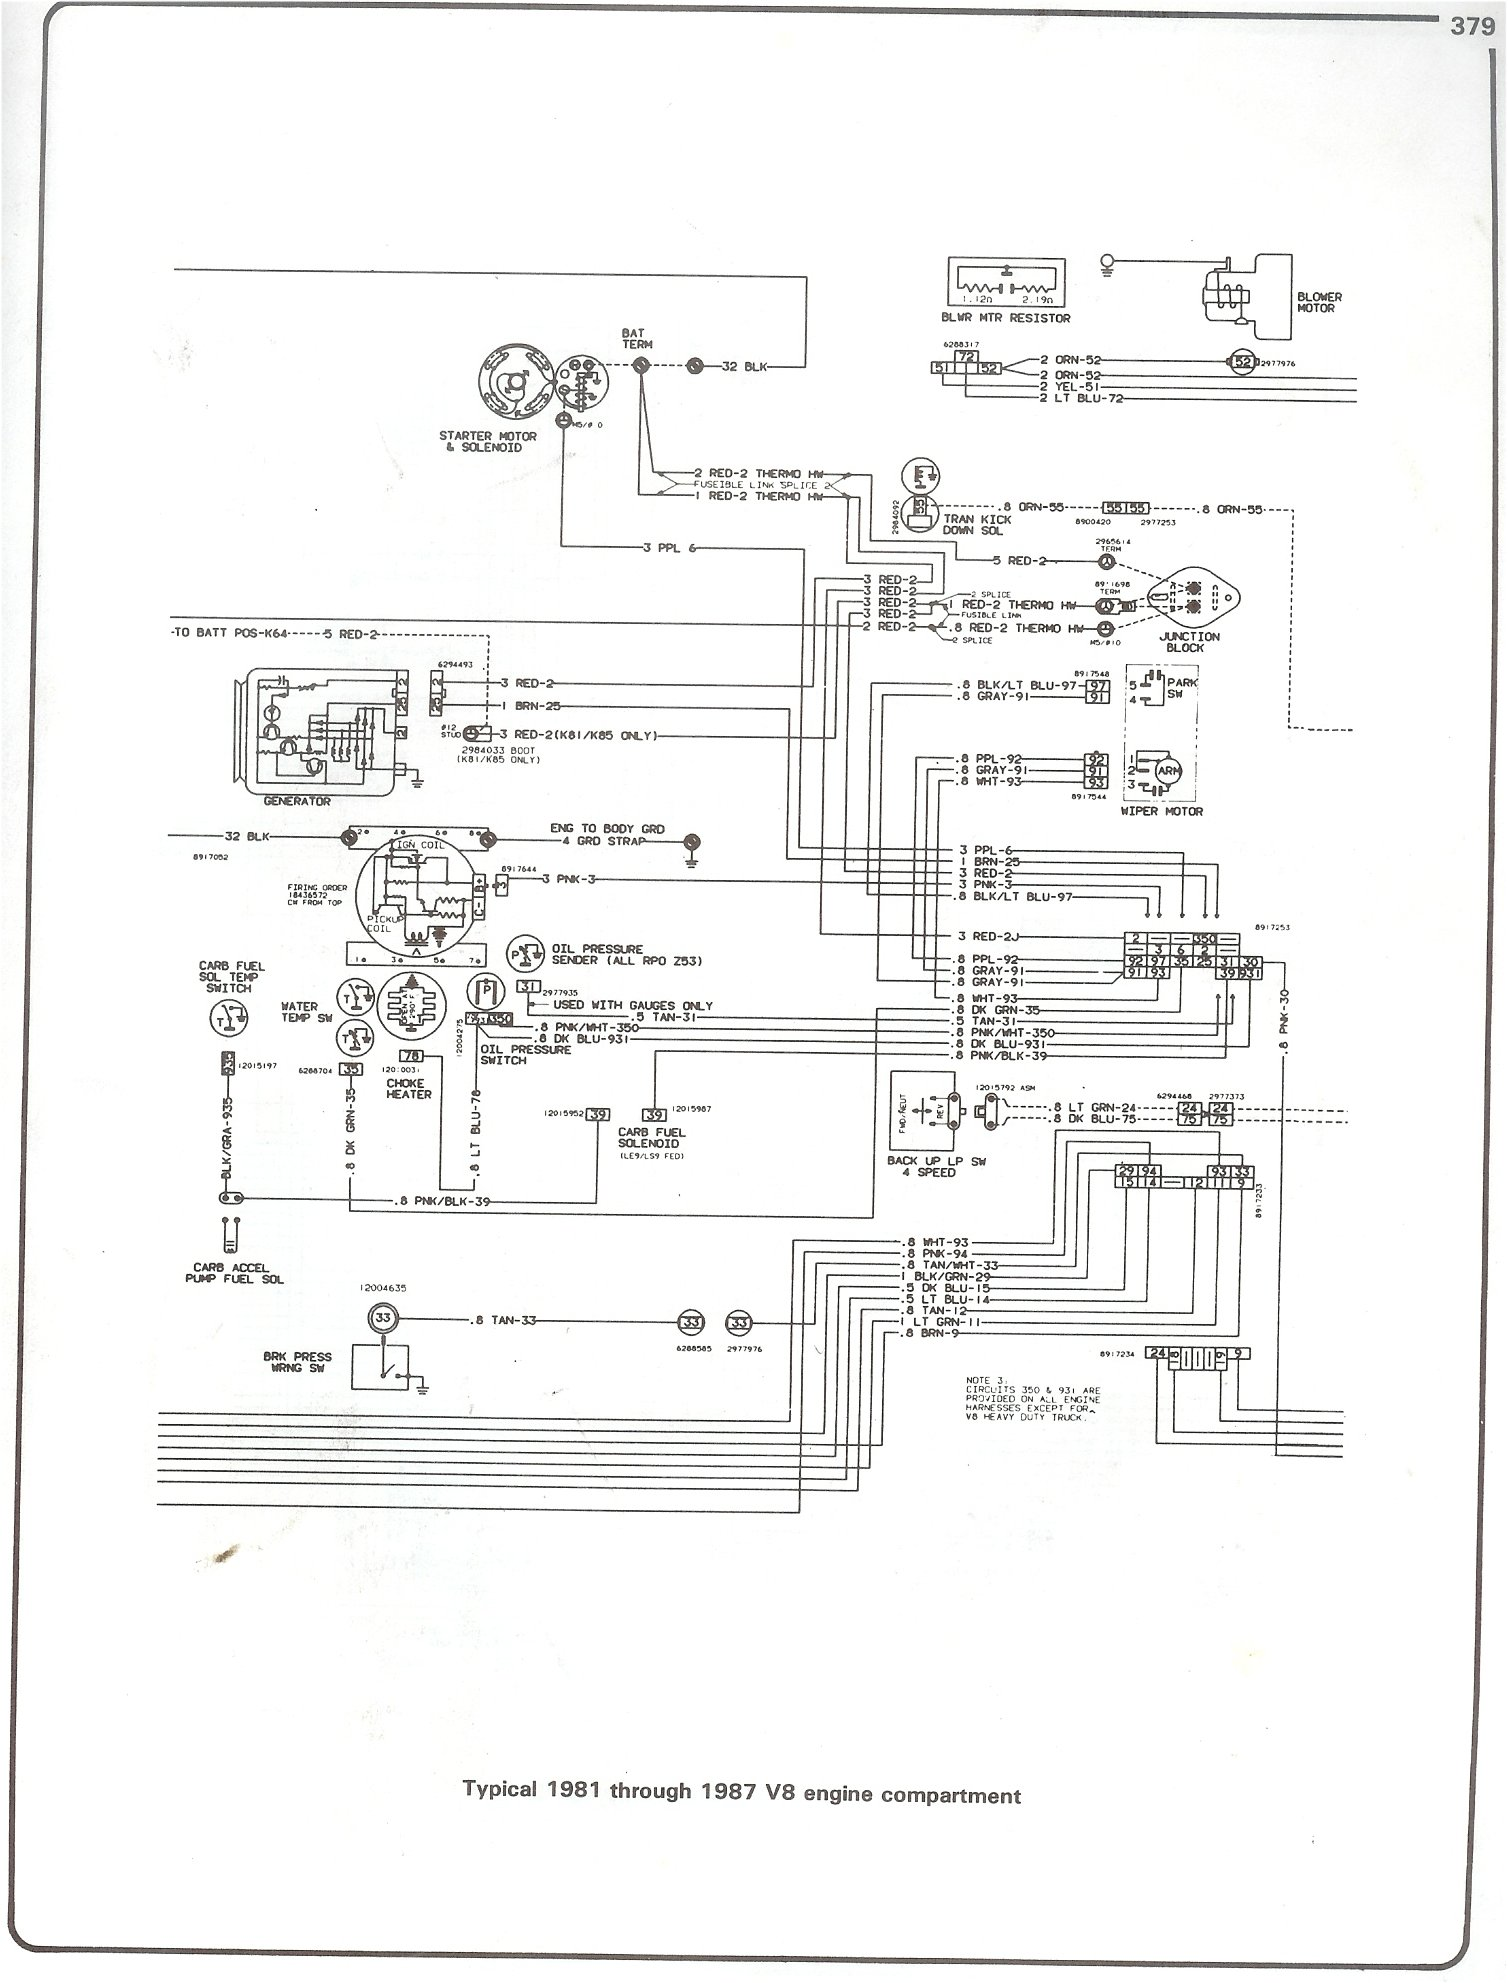 81 87_V8_engine complete 73 87 wiring diagrams 1988 GMC Sierra 1500 at honlapkeszites.co